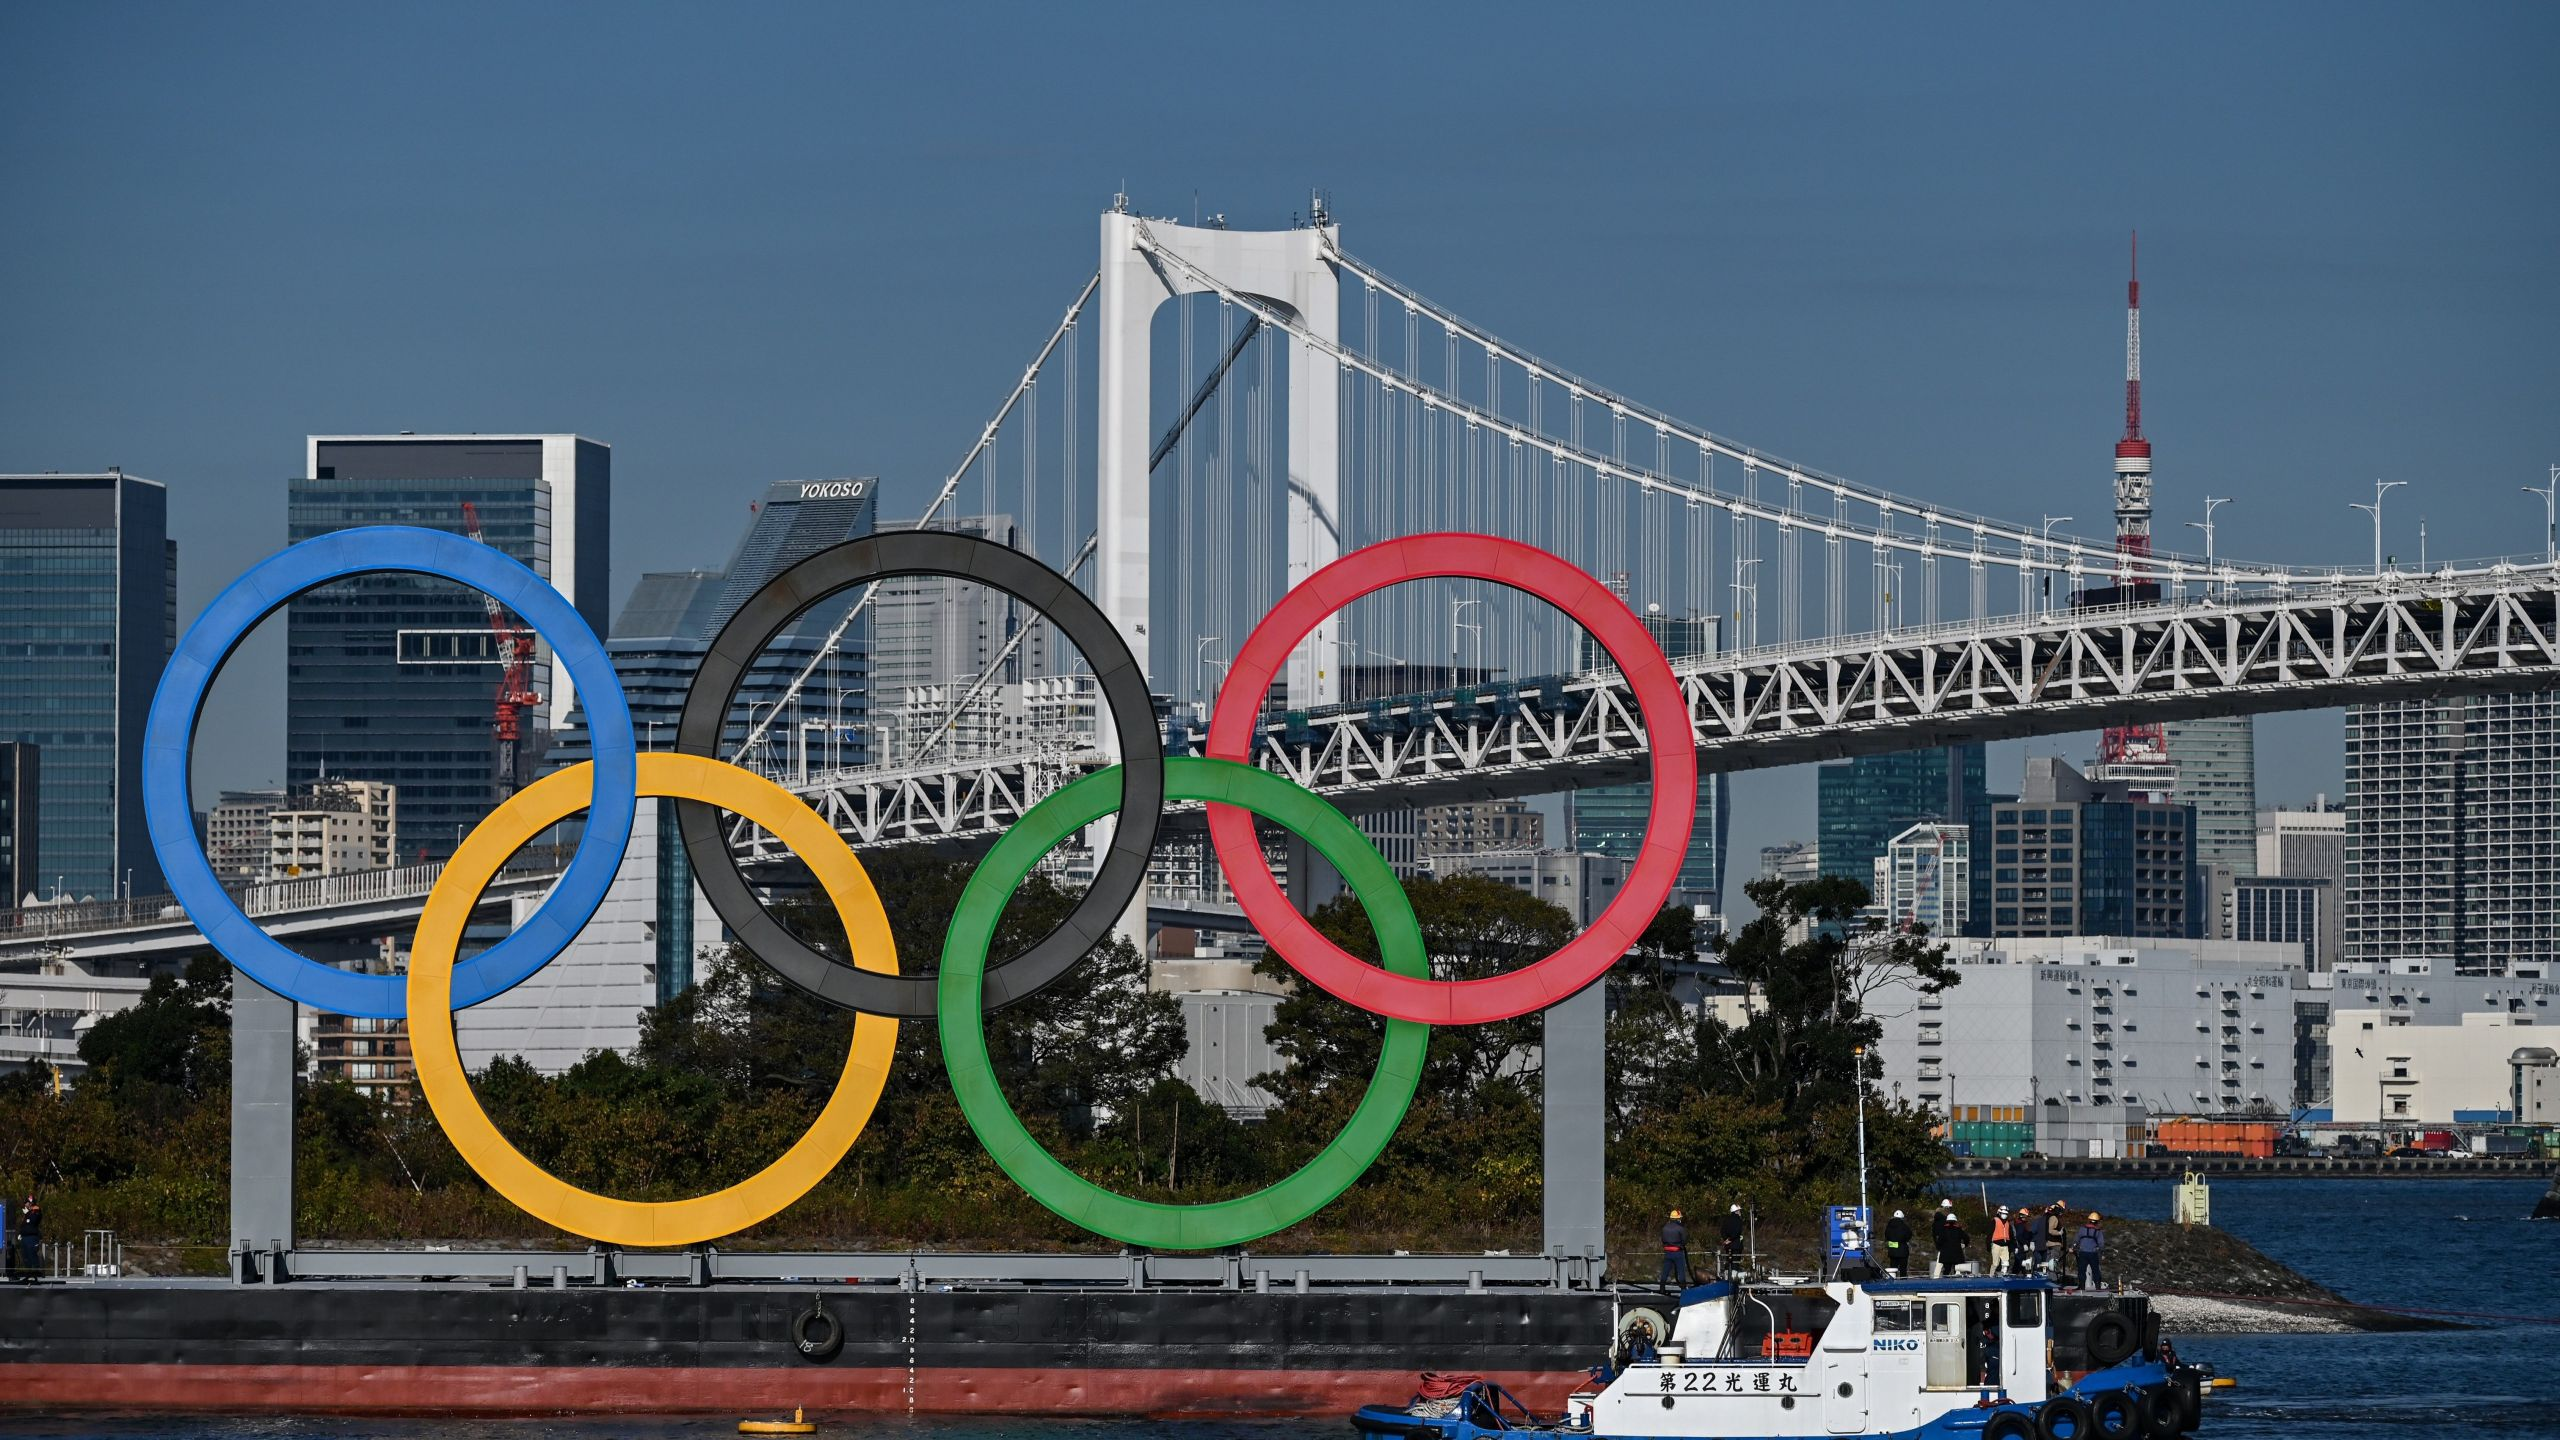 The Olympic rings are reinstalled at the waterfront in Tokyo on Dec. 1, 2020. (CHARLY TRIBALLEAU/AFP via Getty Images)